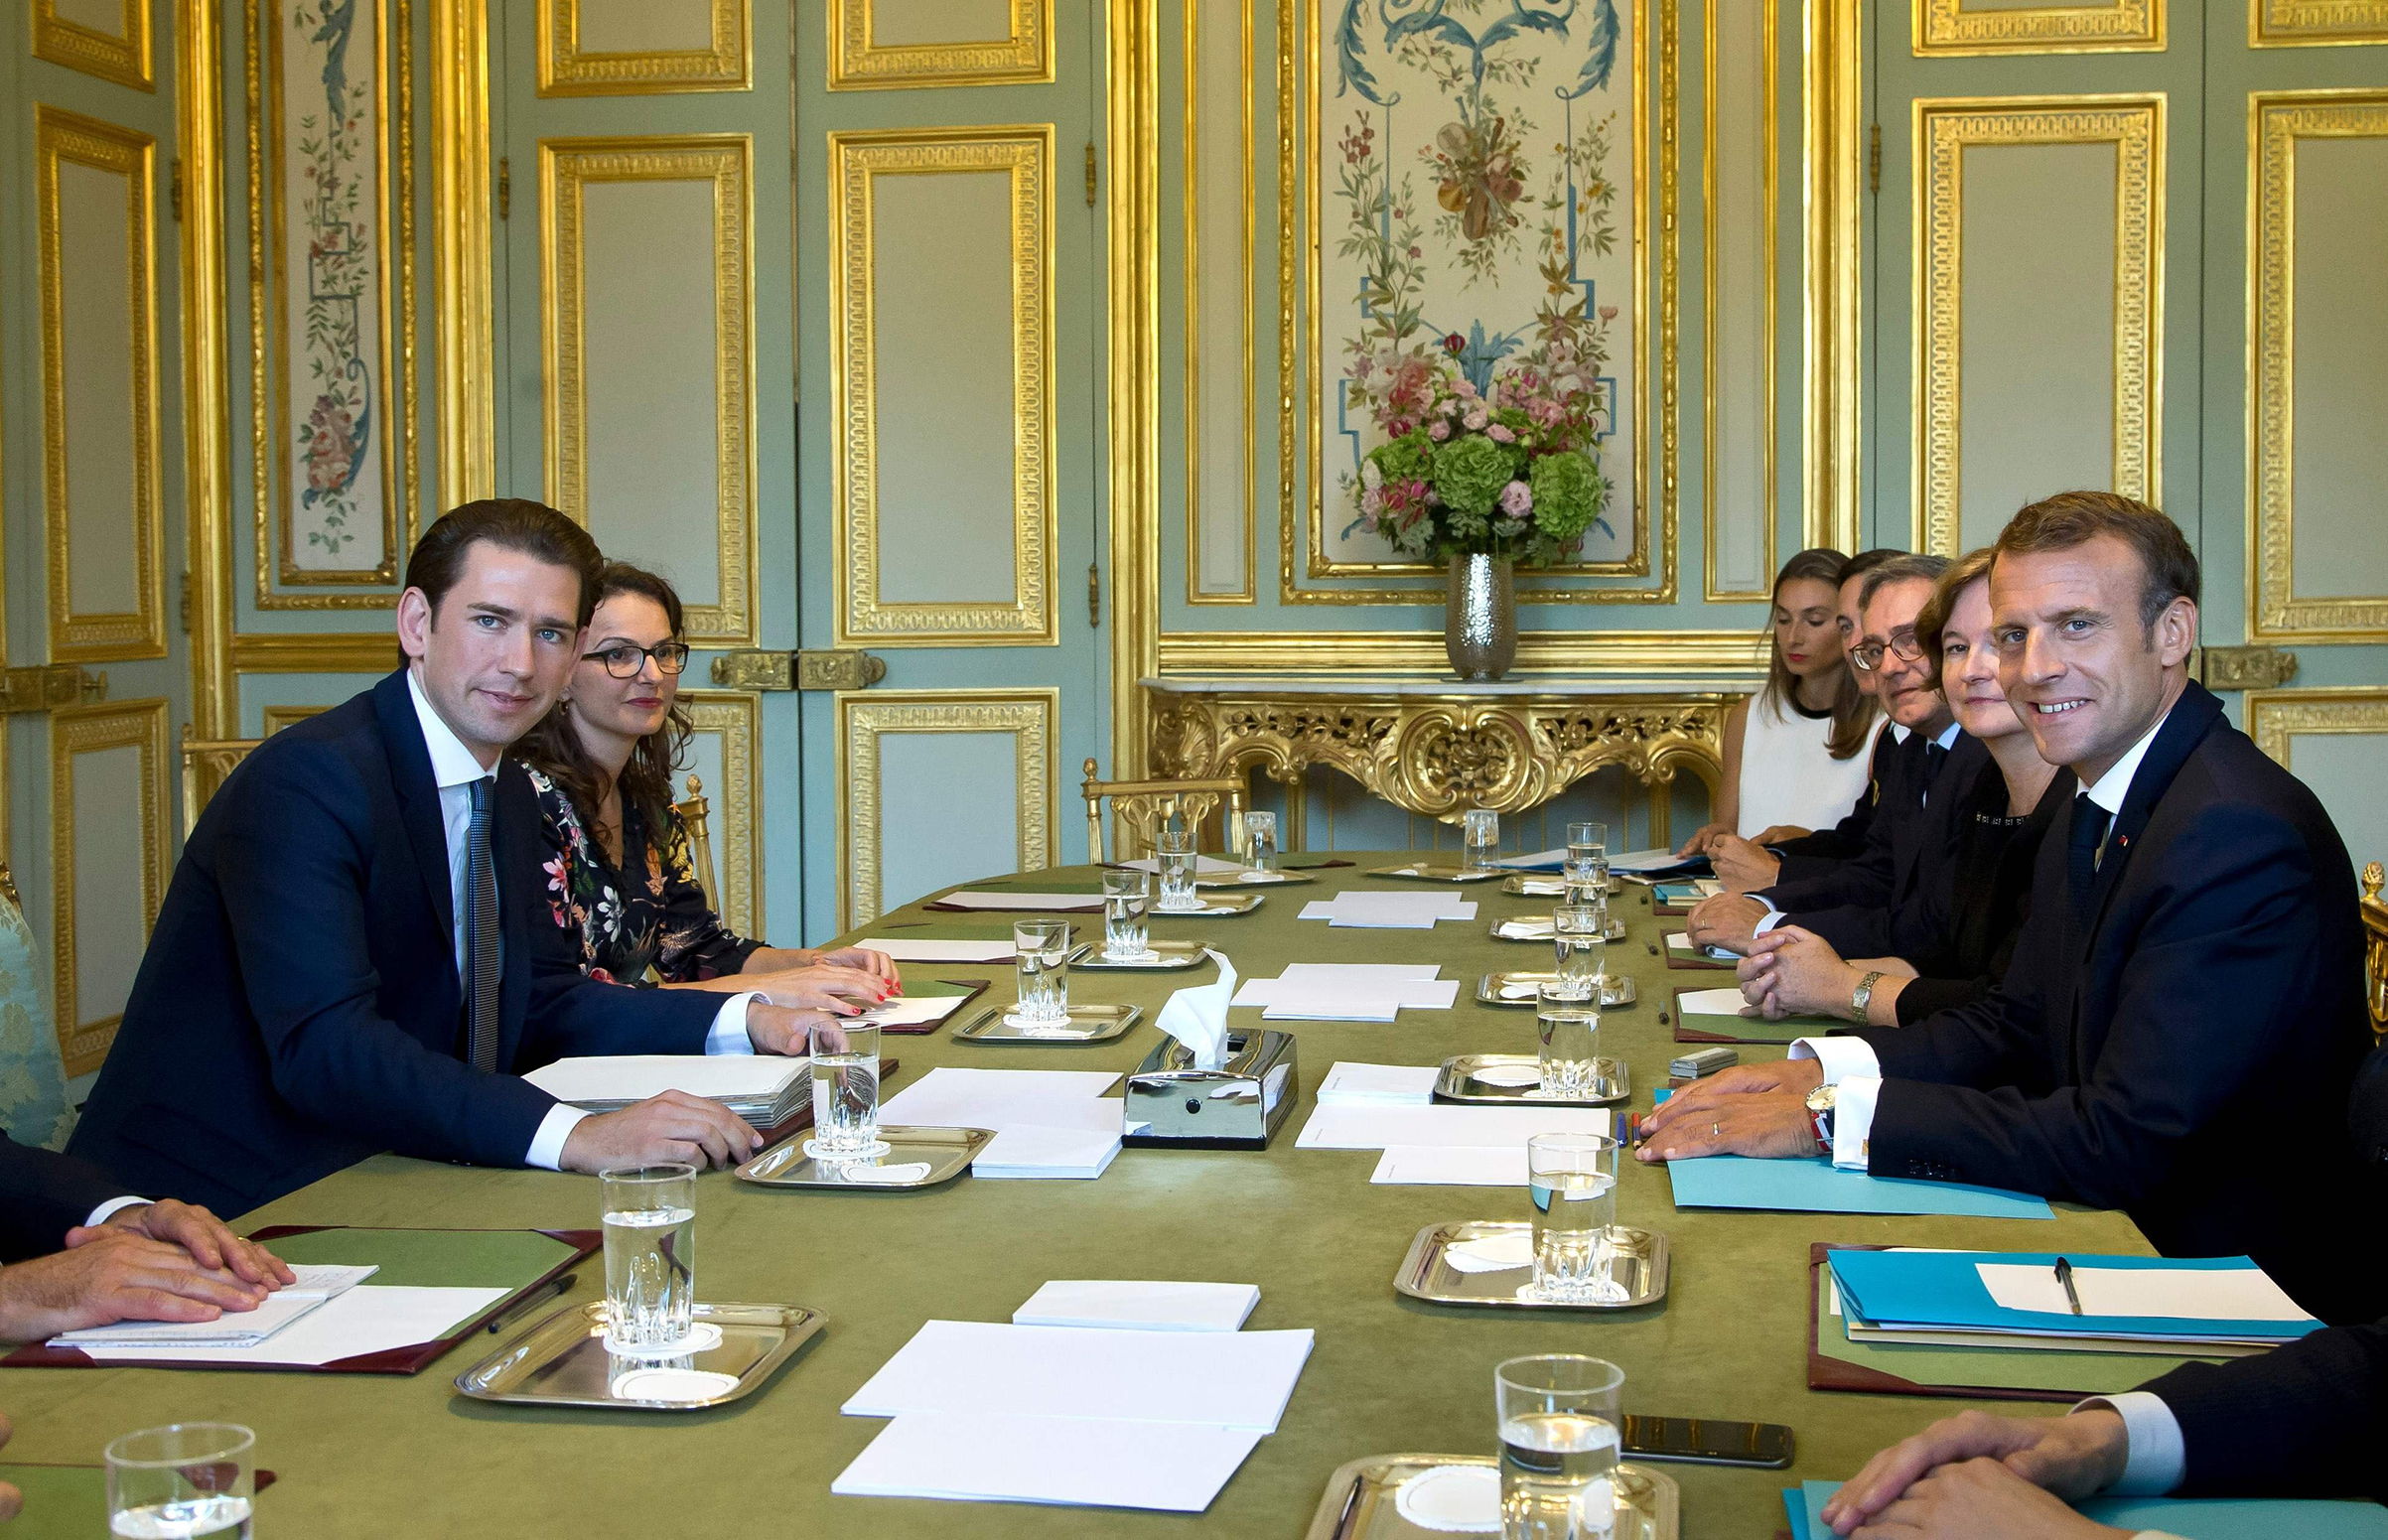 Kurz meets with Macron in Paris in September, days before a summit in part devoted to the issue of migration. While Macron has sought to isolate his far-right opponents, Kurz chose to bring them into his government